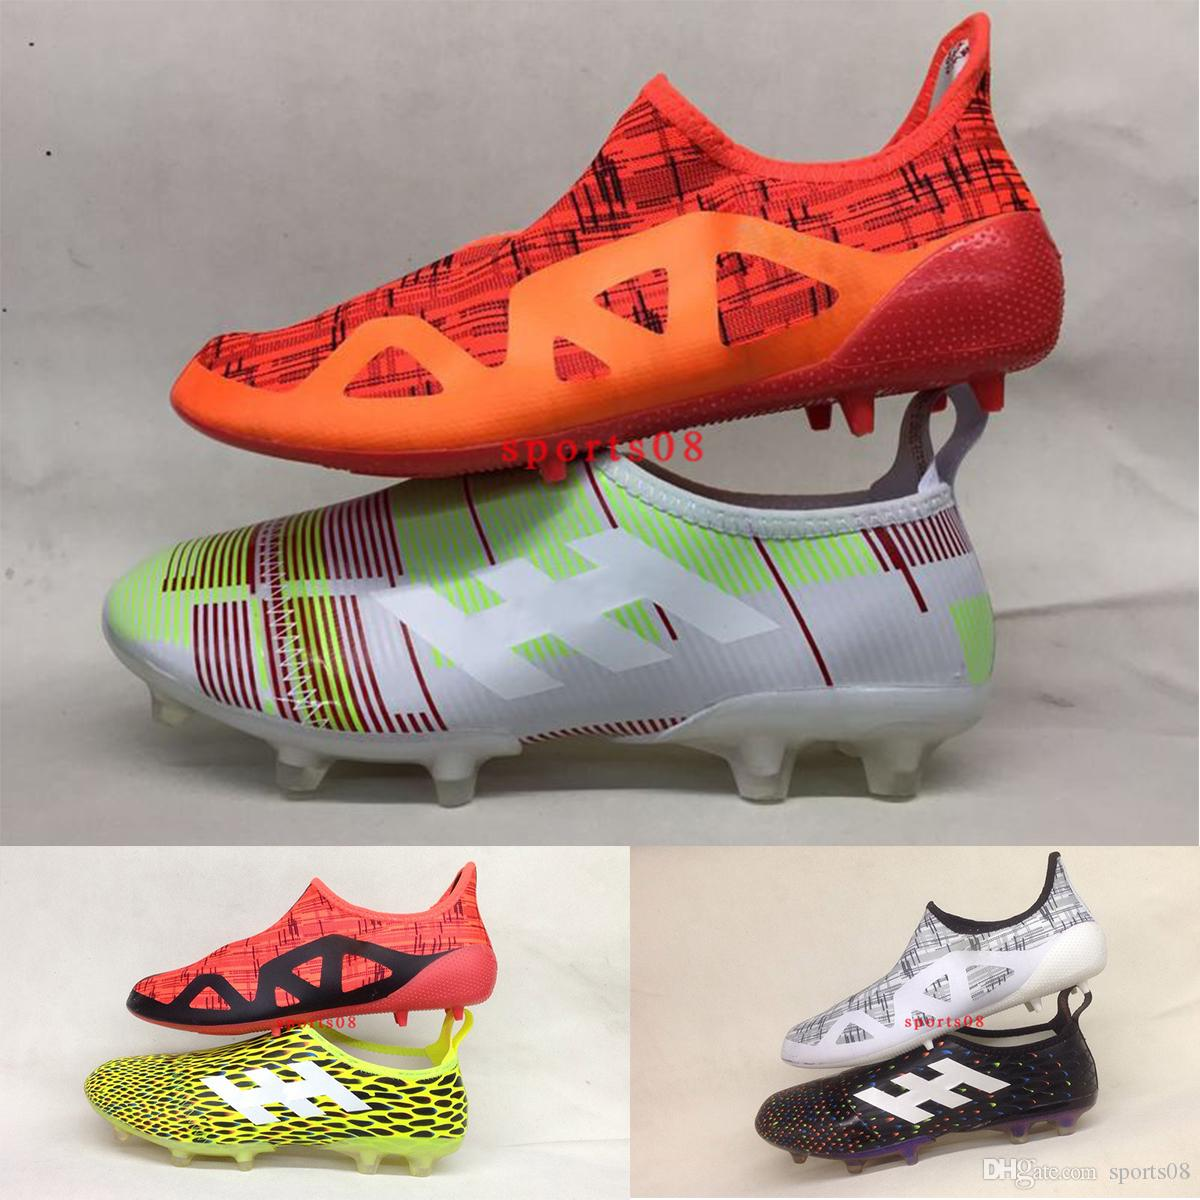 27b77d5ec 2017 New Arrival Original Soccer Cleats Glitch17 FG Football Boots Mens  Glitch Skin Top Quality Soccer Shoes Copa White Orange Green 39-45